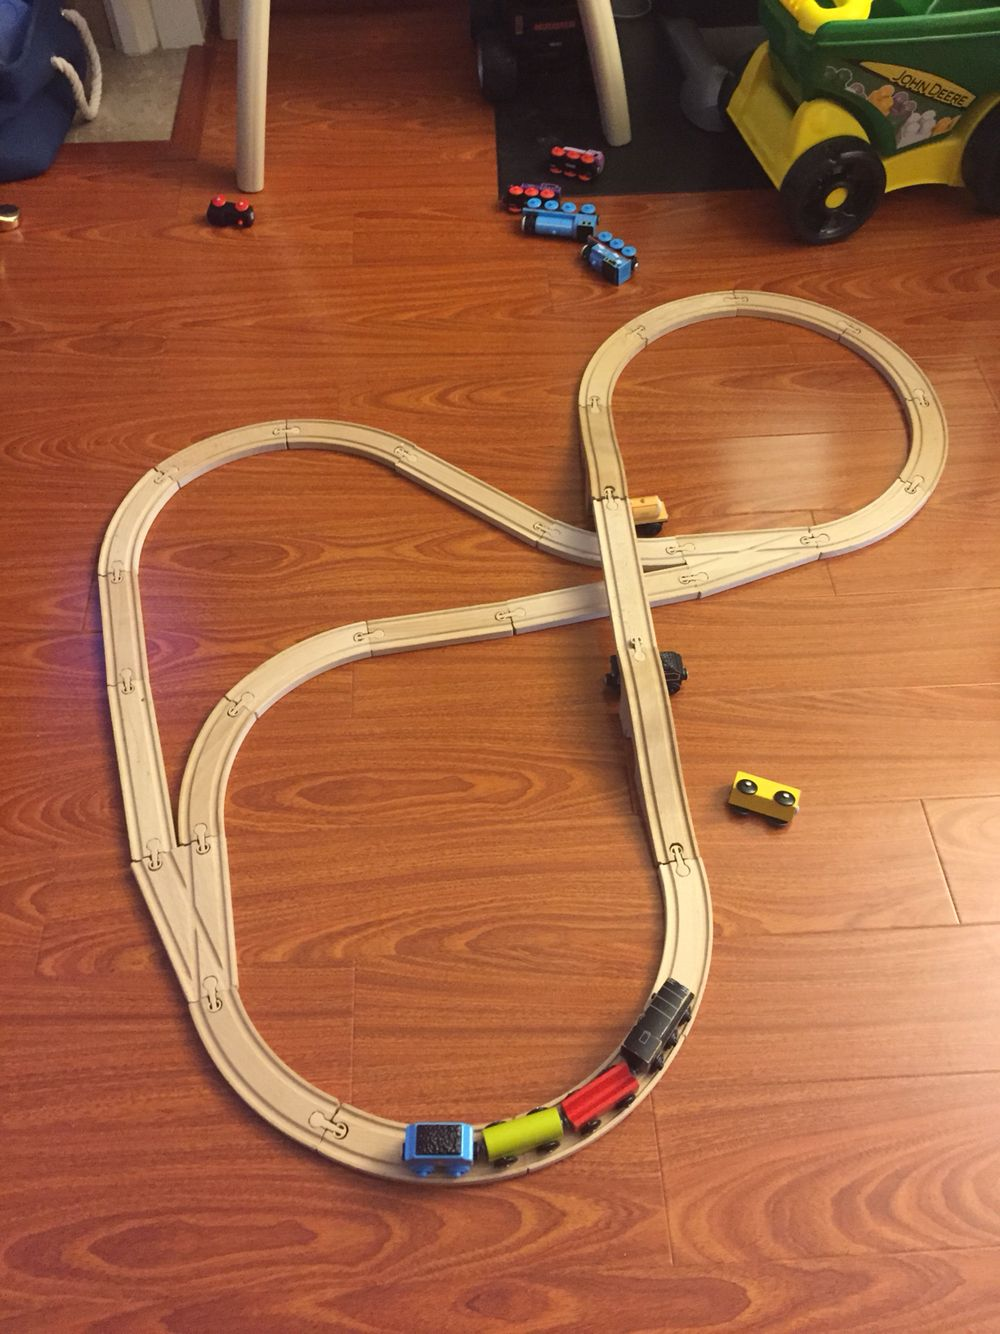 pin by gerry bussacco jr on kid stuff pinterest ikea train train and train set. Black Bedroom Furniture Sets. Home Design Ideas